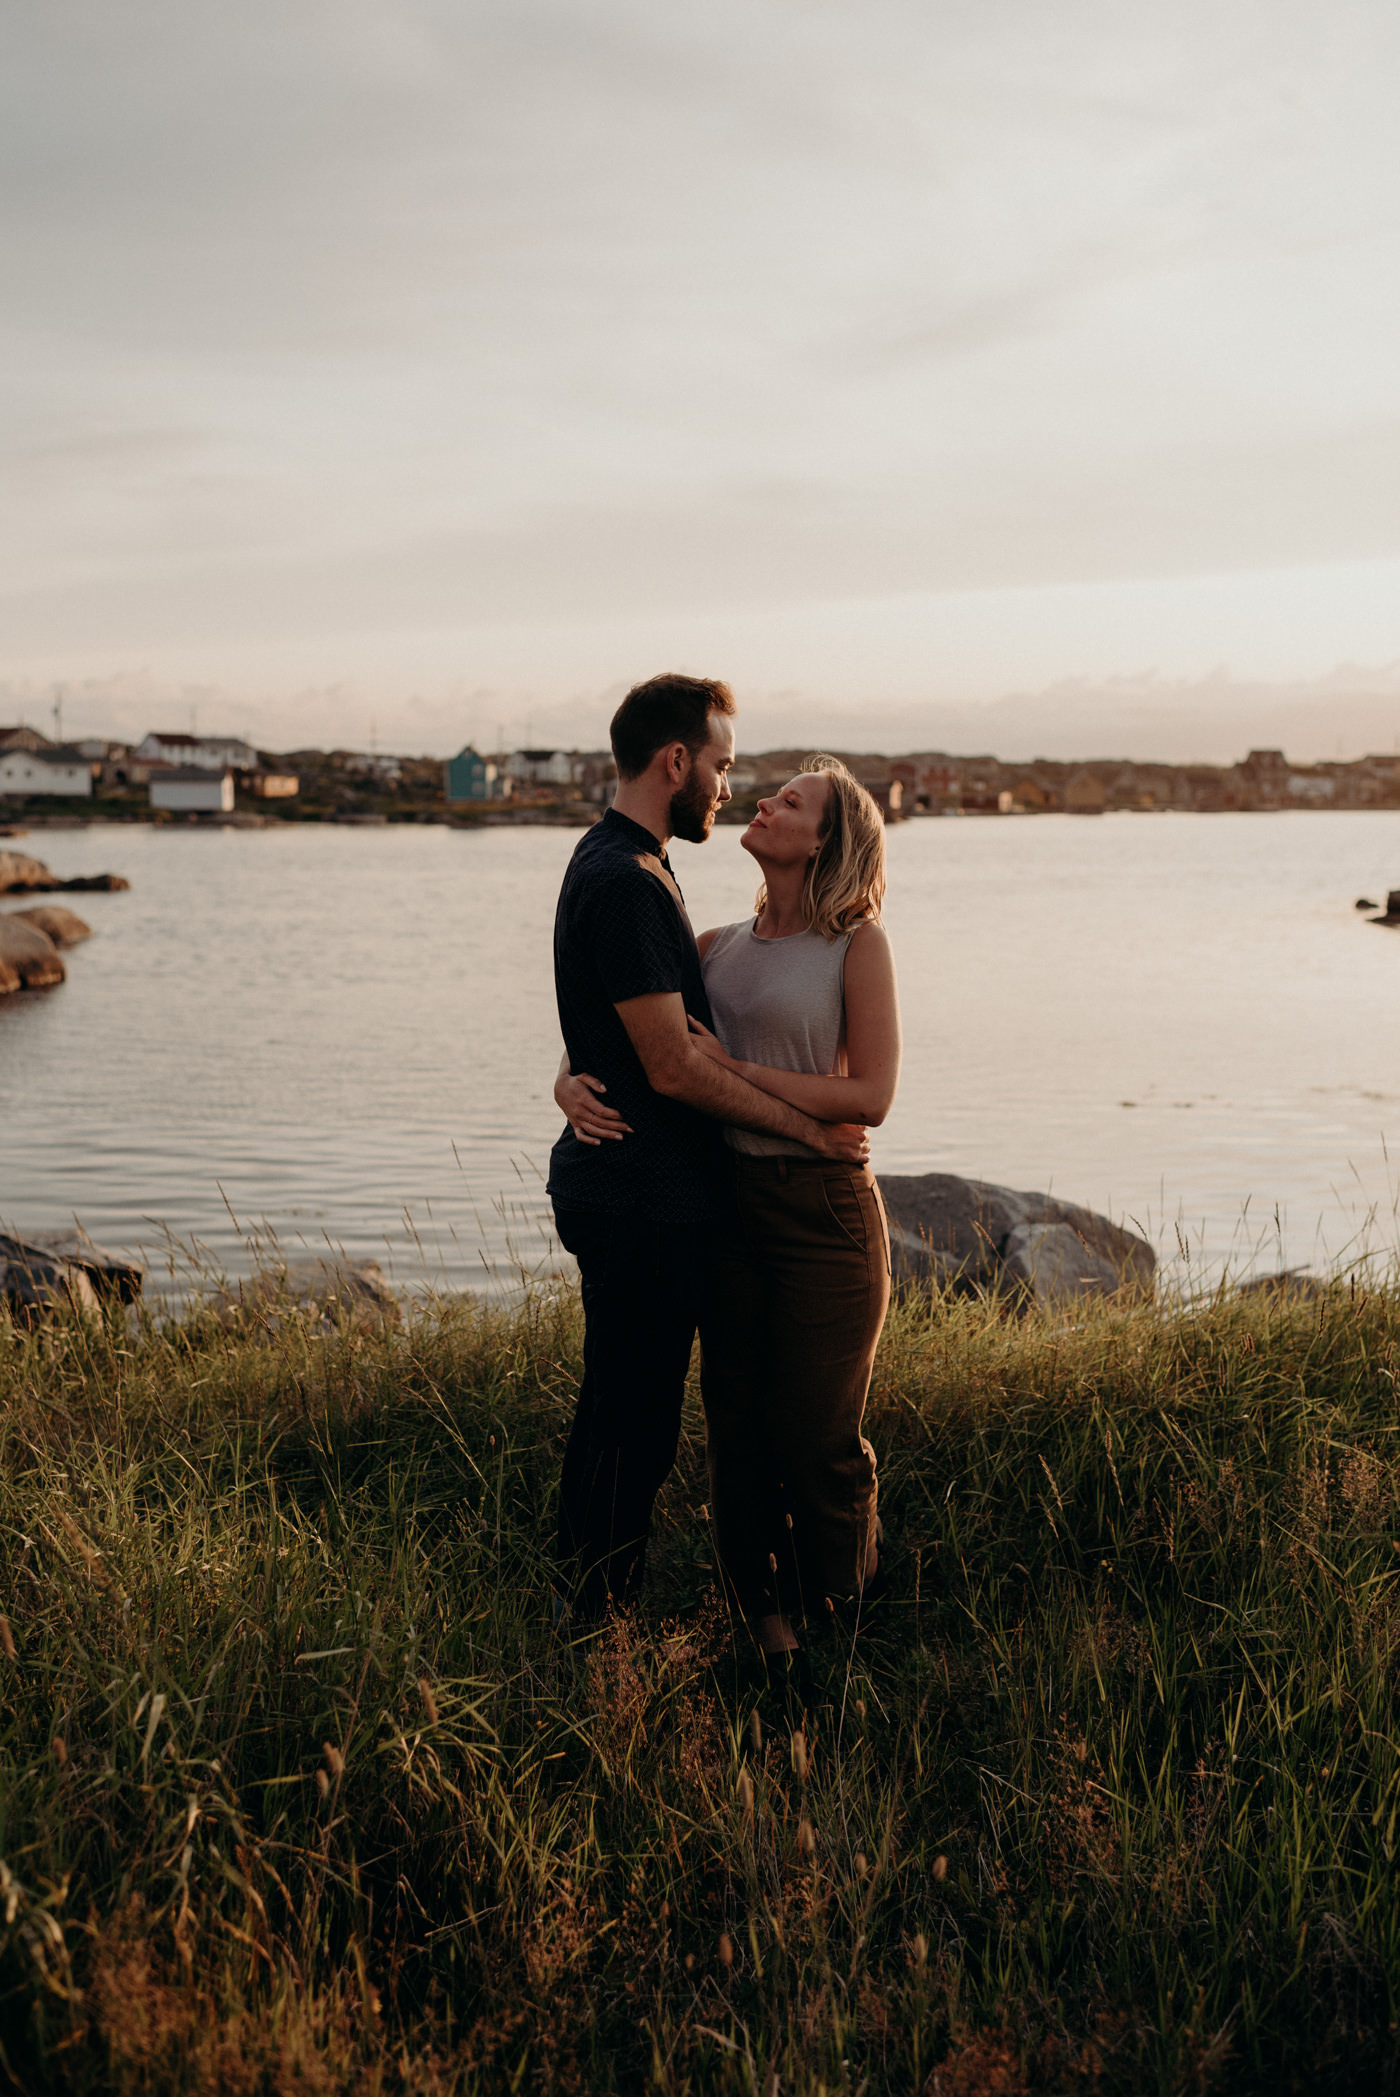 Tilting engagement shoot at sunset